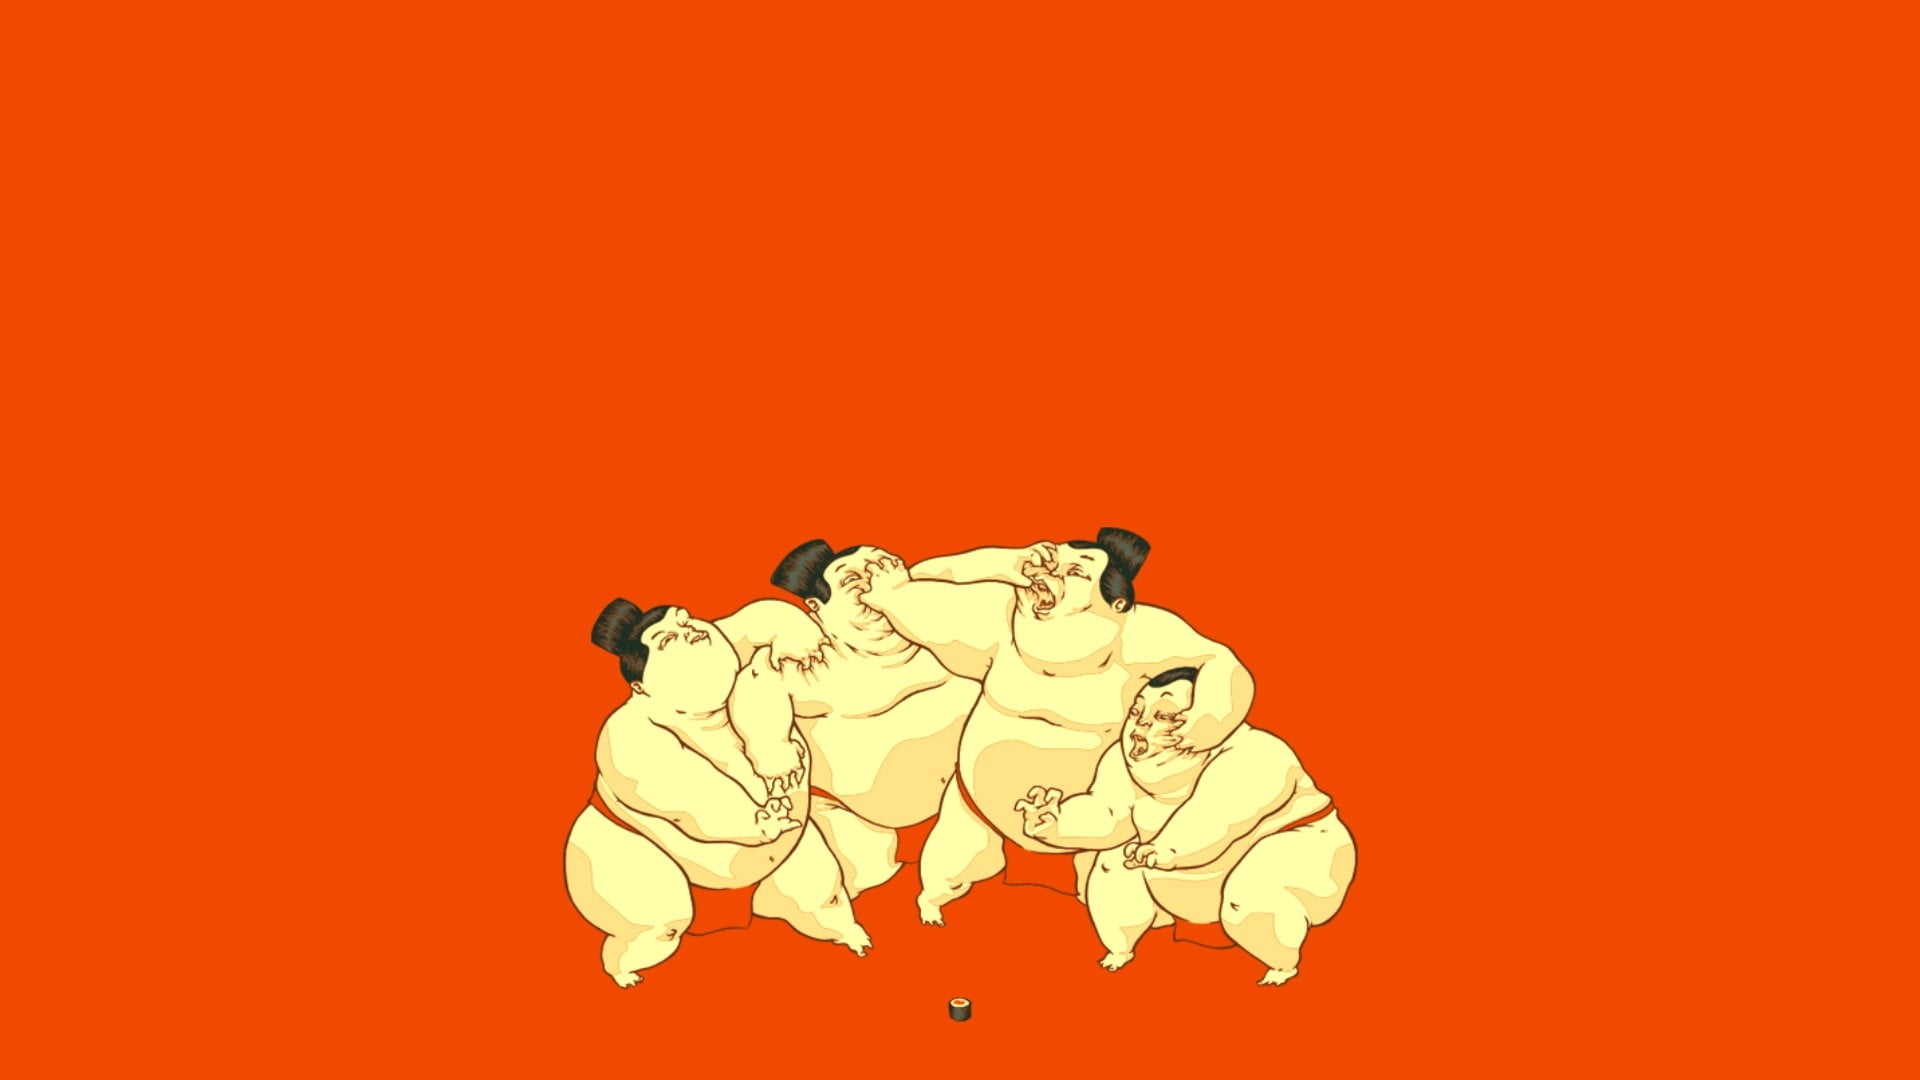 Four sumo wrestlers illustration artwork sumo wrestler HD 1920x1080